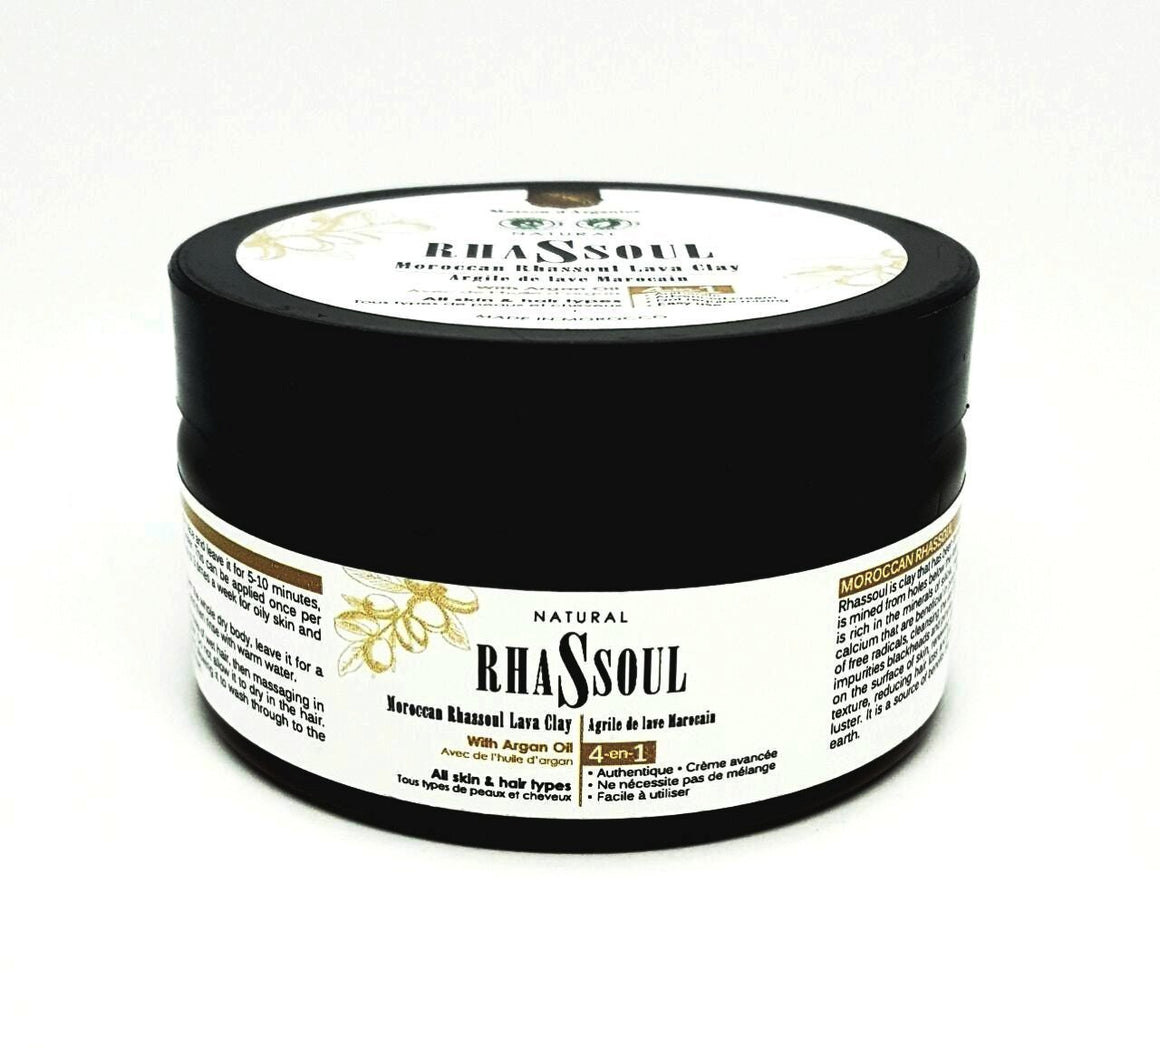 7 Oz Organic Moroccan Ghassoul Clay Mask for Skin, Face and Hair Care. - Maison d'arganier